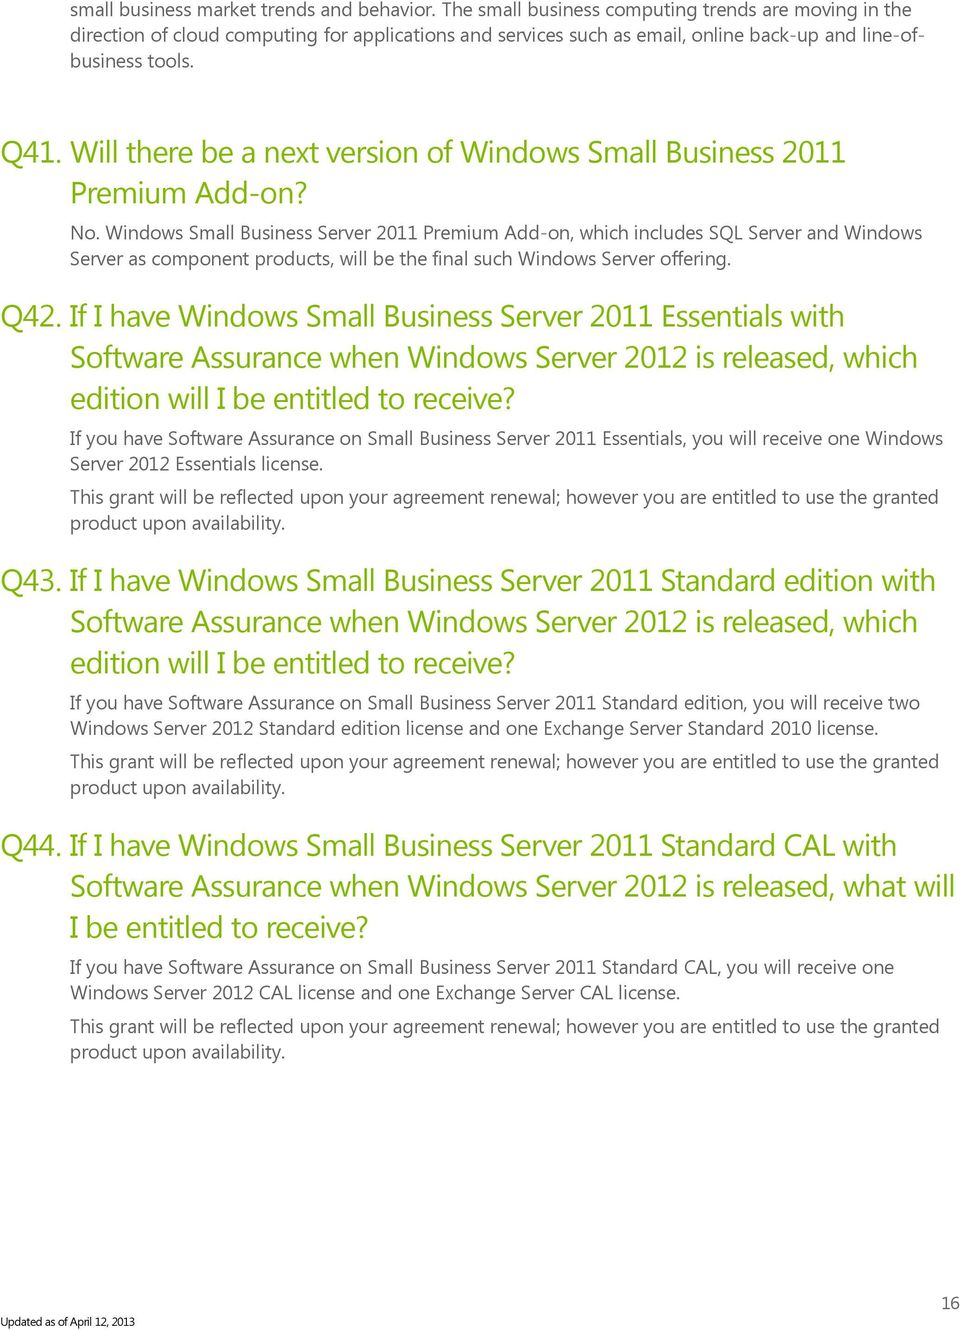 Will there be a next version of Windows Small Business 2011 Premium Add-on? No.